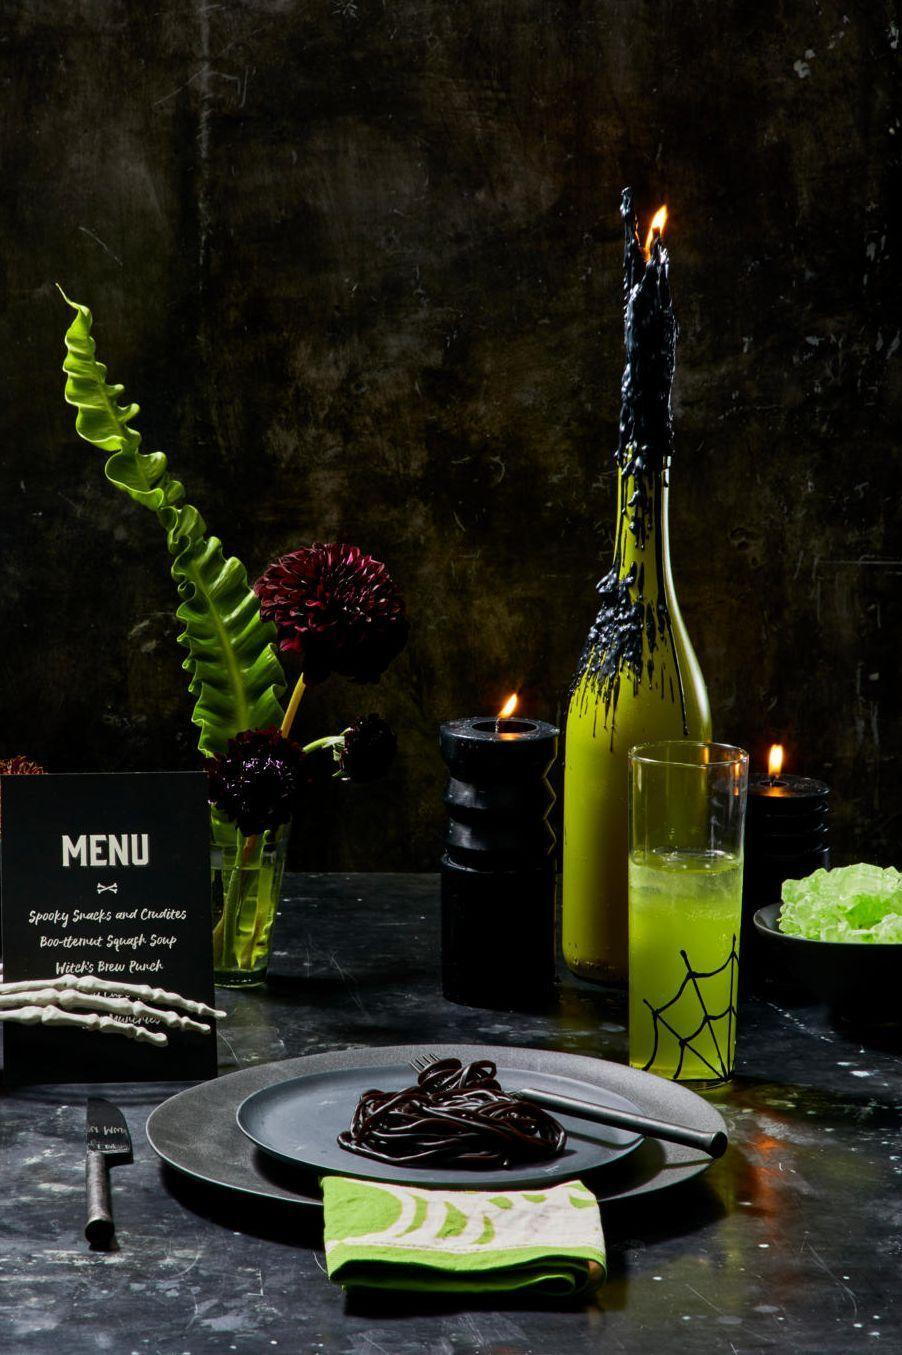 """<p>Go the ghoulish route with a table setting and include black and green accessories, like candles, as well as dark and dramatic floral arrangements.<br></p><p><a class=""""link rapid-noclick-resp"""" href=""""https://go.redirectingat.com?id=74968X1596630&url=https%3A%2F%2Fwww.potterybarn.com%2Fproducts%2Fmason-modern-dinner-plate%2F&sref=https%3A%2F%2Fwww.goodhousekeeping.com%2Fholidays%2Fhalloween-ideas%2Fg33437890%2Fhalloween-table-decorations-centerpieces%2F"""" rel=""""nofollow noopener"""" target=""""_blank"""" data-ylk=""""slk:SHOP BLACK PLATES"""">SHOP BLACK PLATES</a></p>"""